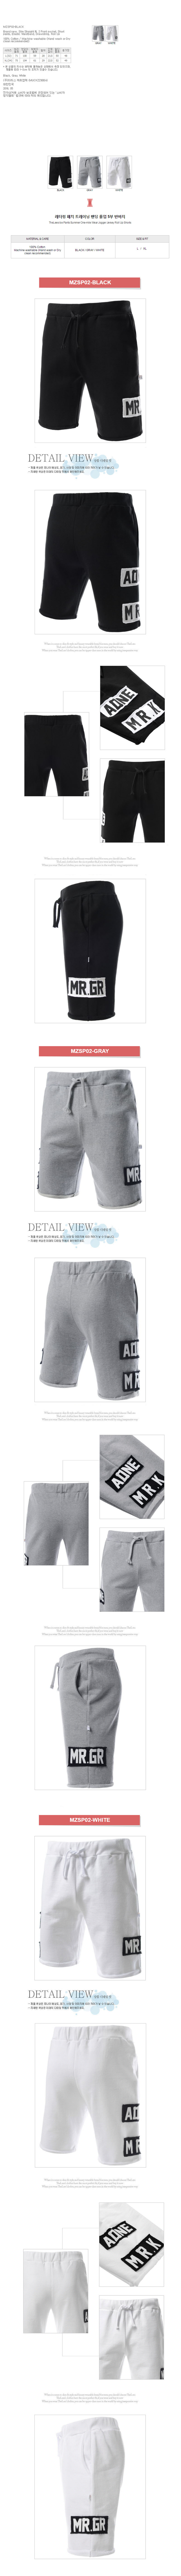 [ KOOLLOOK ] [KoolLook] Training Roll-up Shorts MZSP02